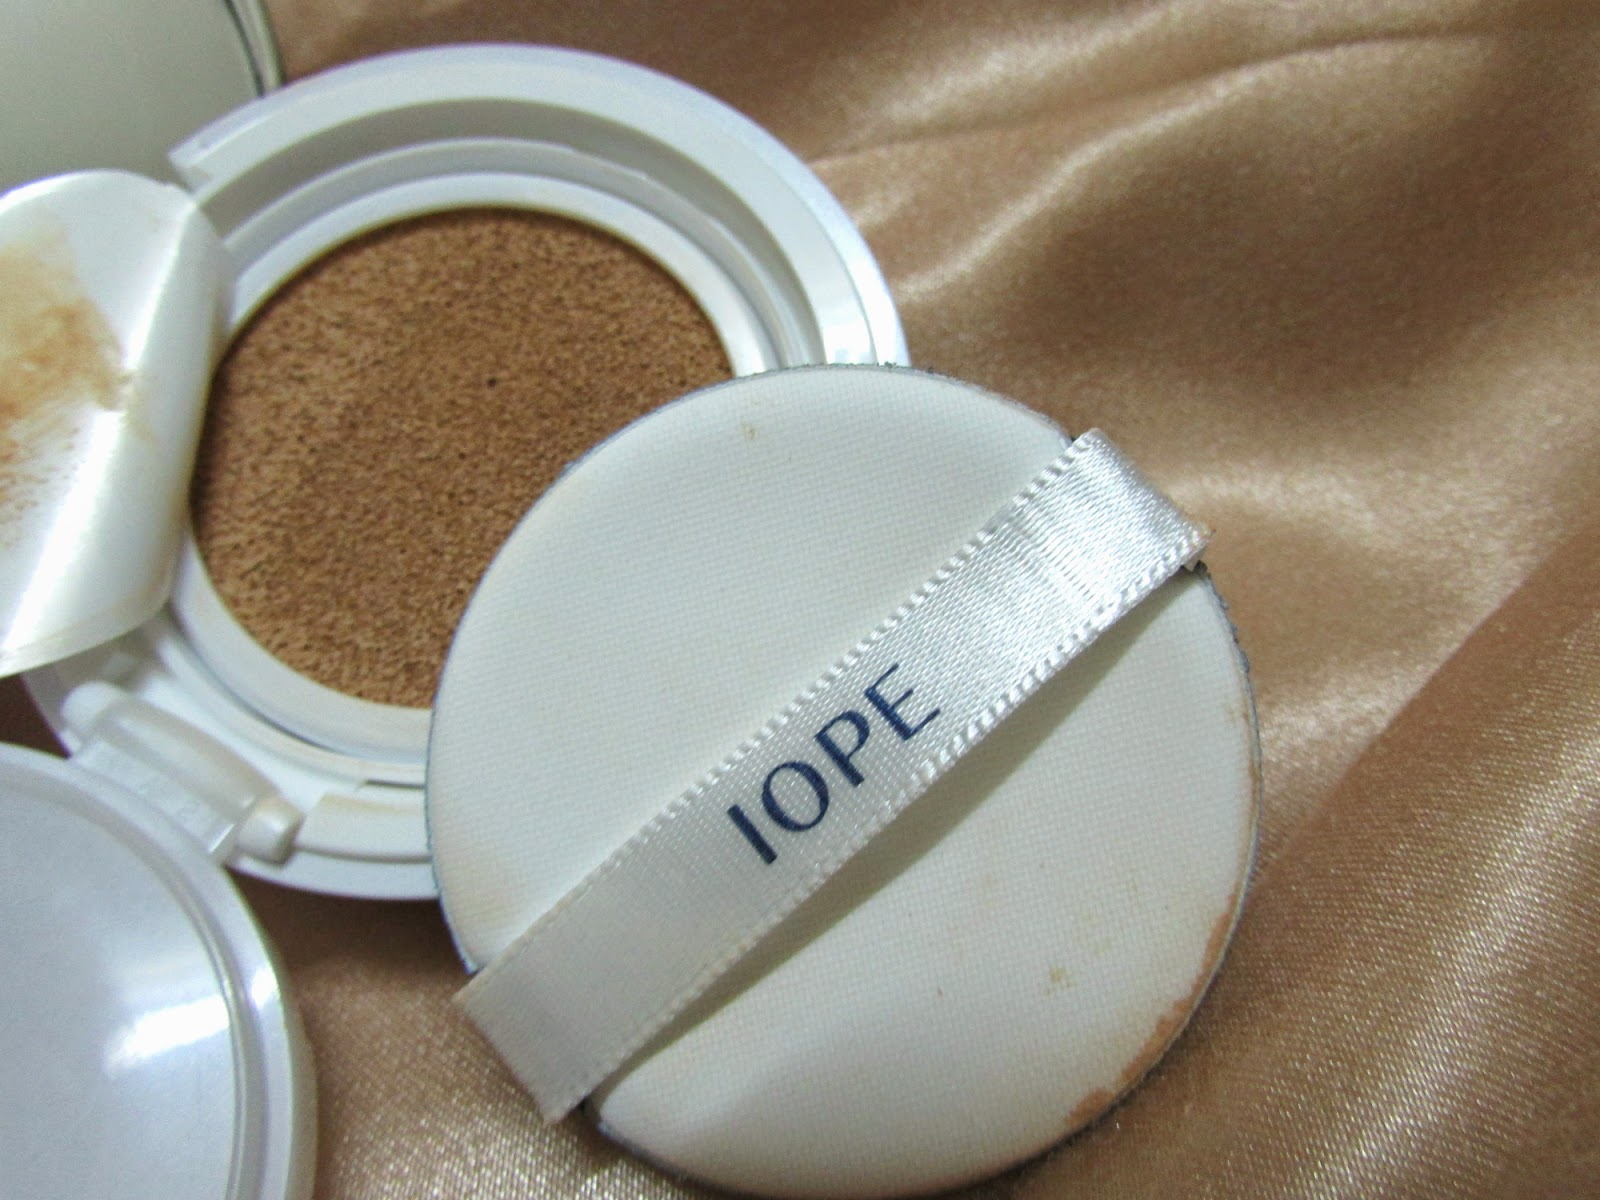 IOPE Air Cushion Foundation review price, best Air , how to use Cushion Foundation, korean makeup, korean makeup online, best foundation for summer and spring, natural looking foundation, IOPE cosmetic, Cushion Foundation india onlinebeauty , fashion,beauty and fashion,beauty blog, fashion blog , indian beauty blog,indian fashion blog, beauty and fashion blog, indian beauty and fashion blog, indian bloggers, indian beauty bloggers, indian fashion bloggers,indian bloggers online, top 10 indian bloggers, top indian bloggers,top 10 fashion bloggers, indian bloggers on blogspot,home remedies, how to